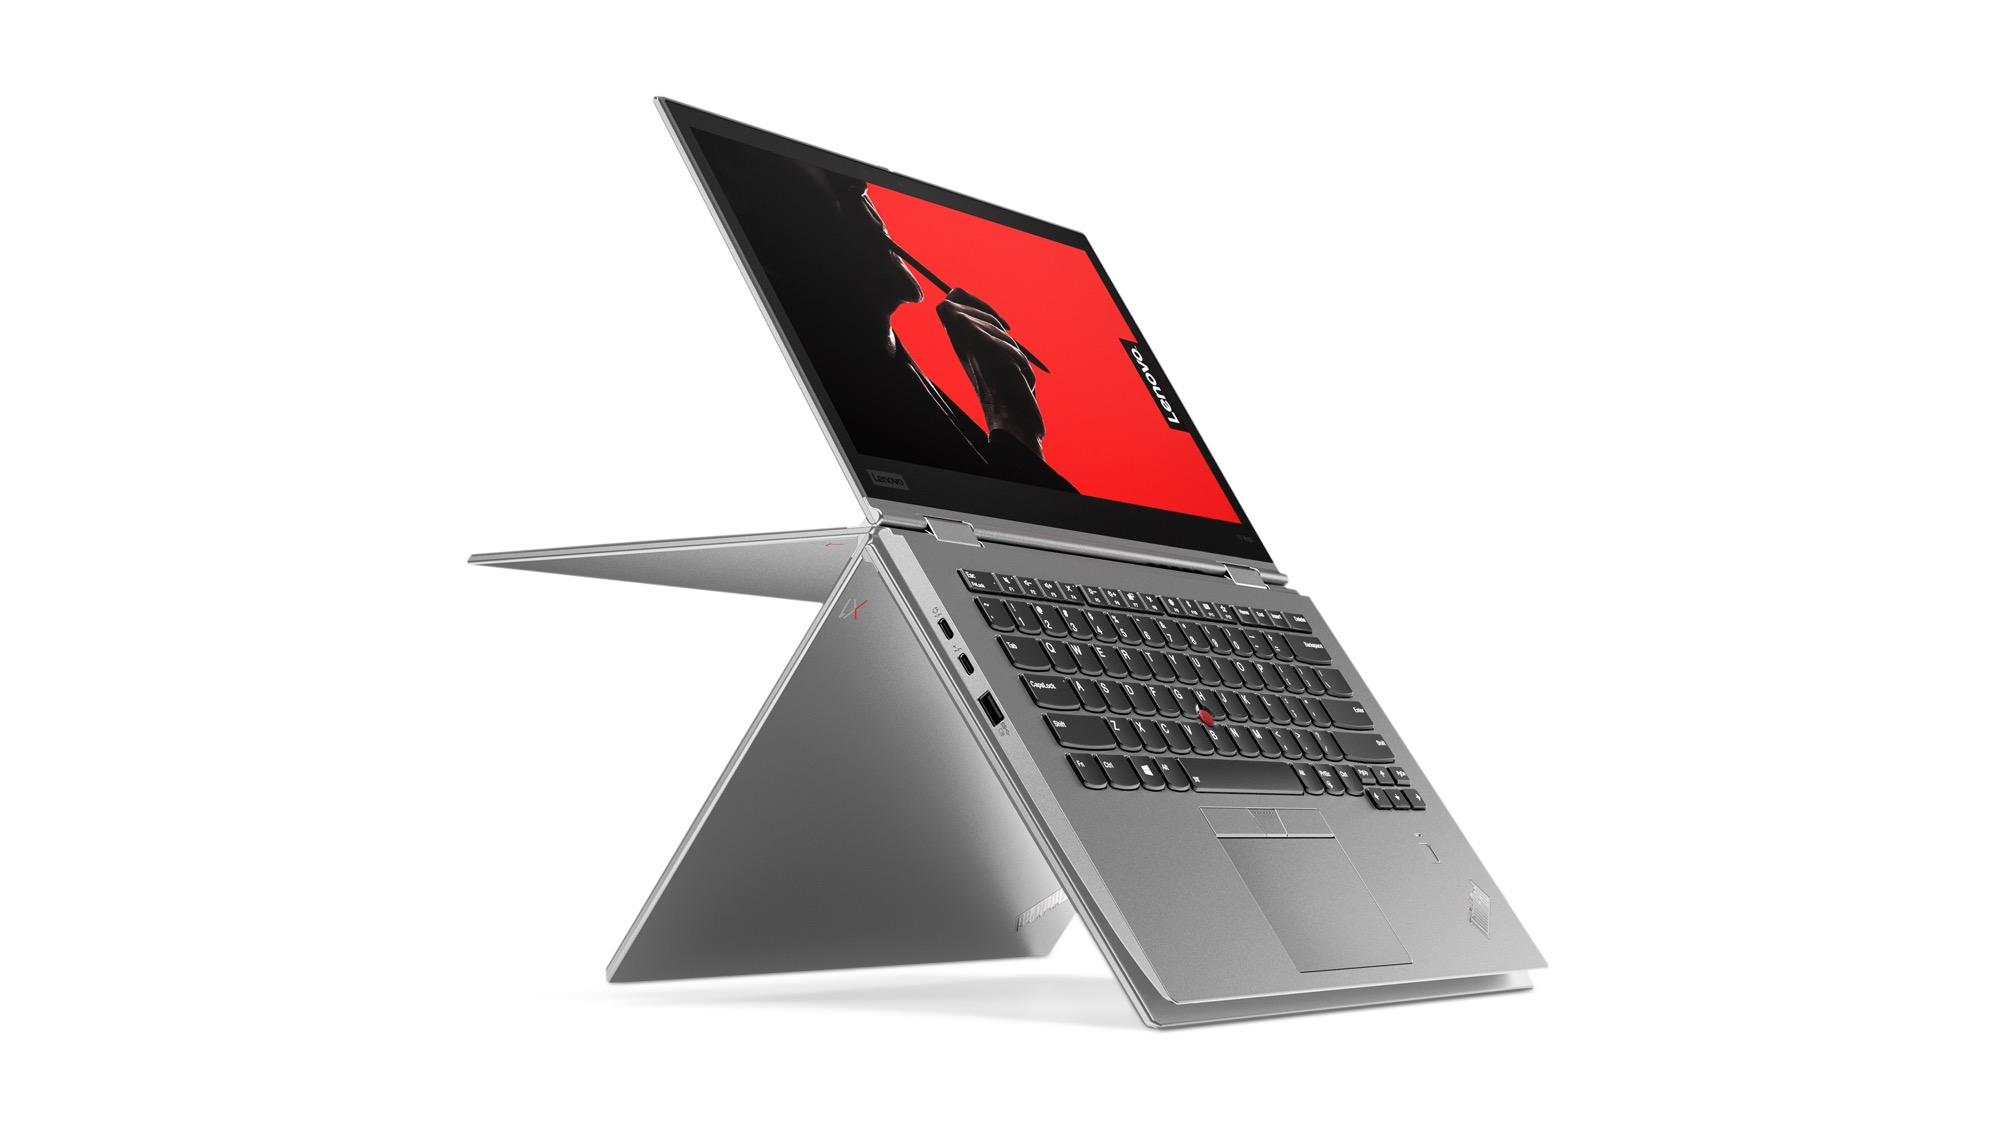 Lenovo ThinkPad X1 line gets CES 2018 update plus 4K